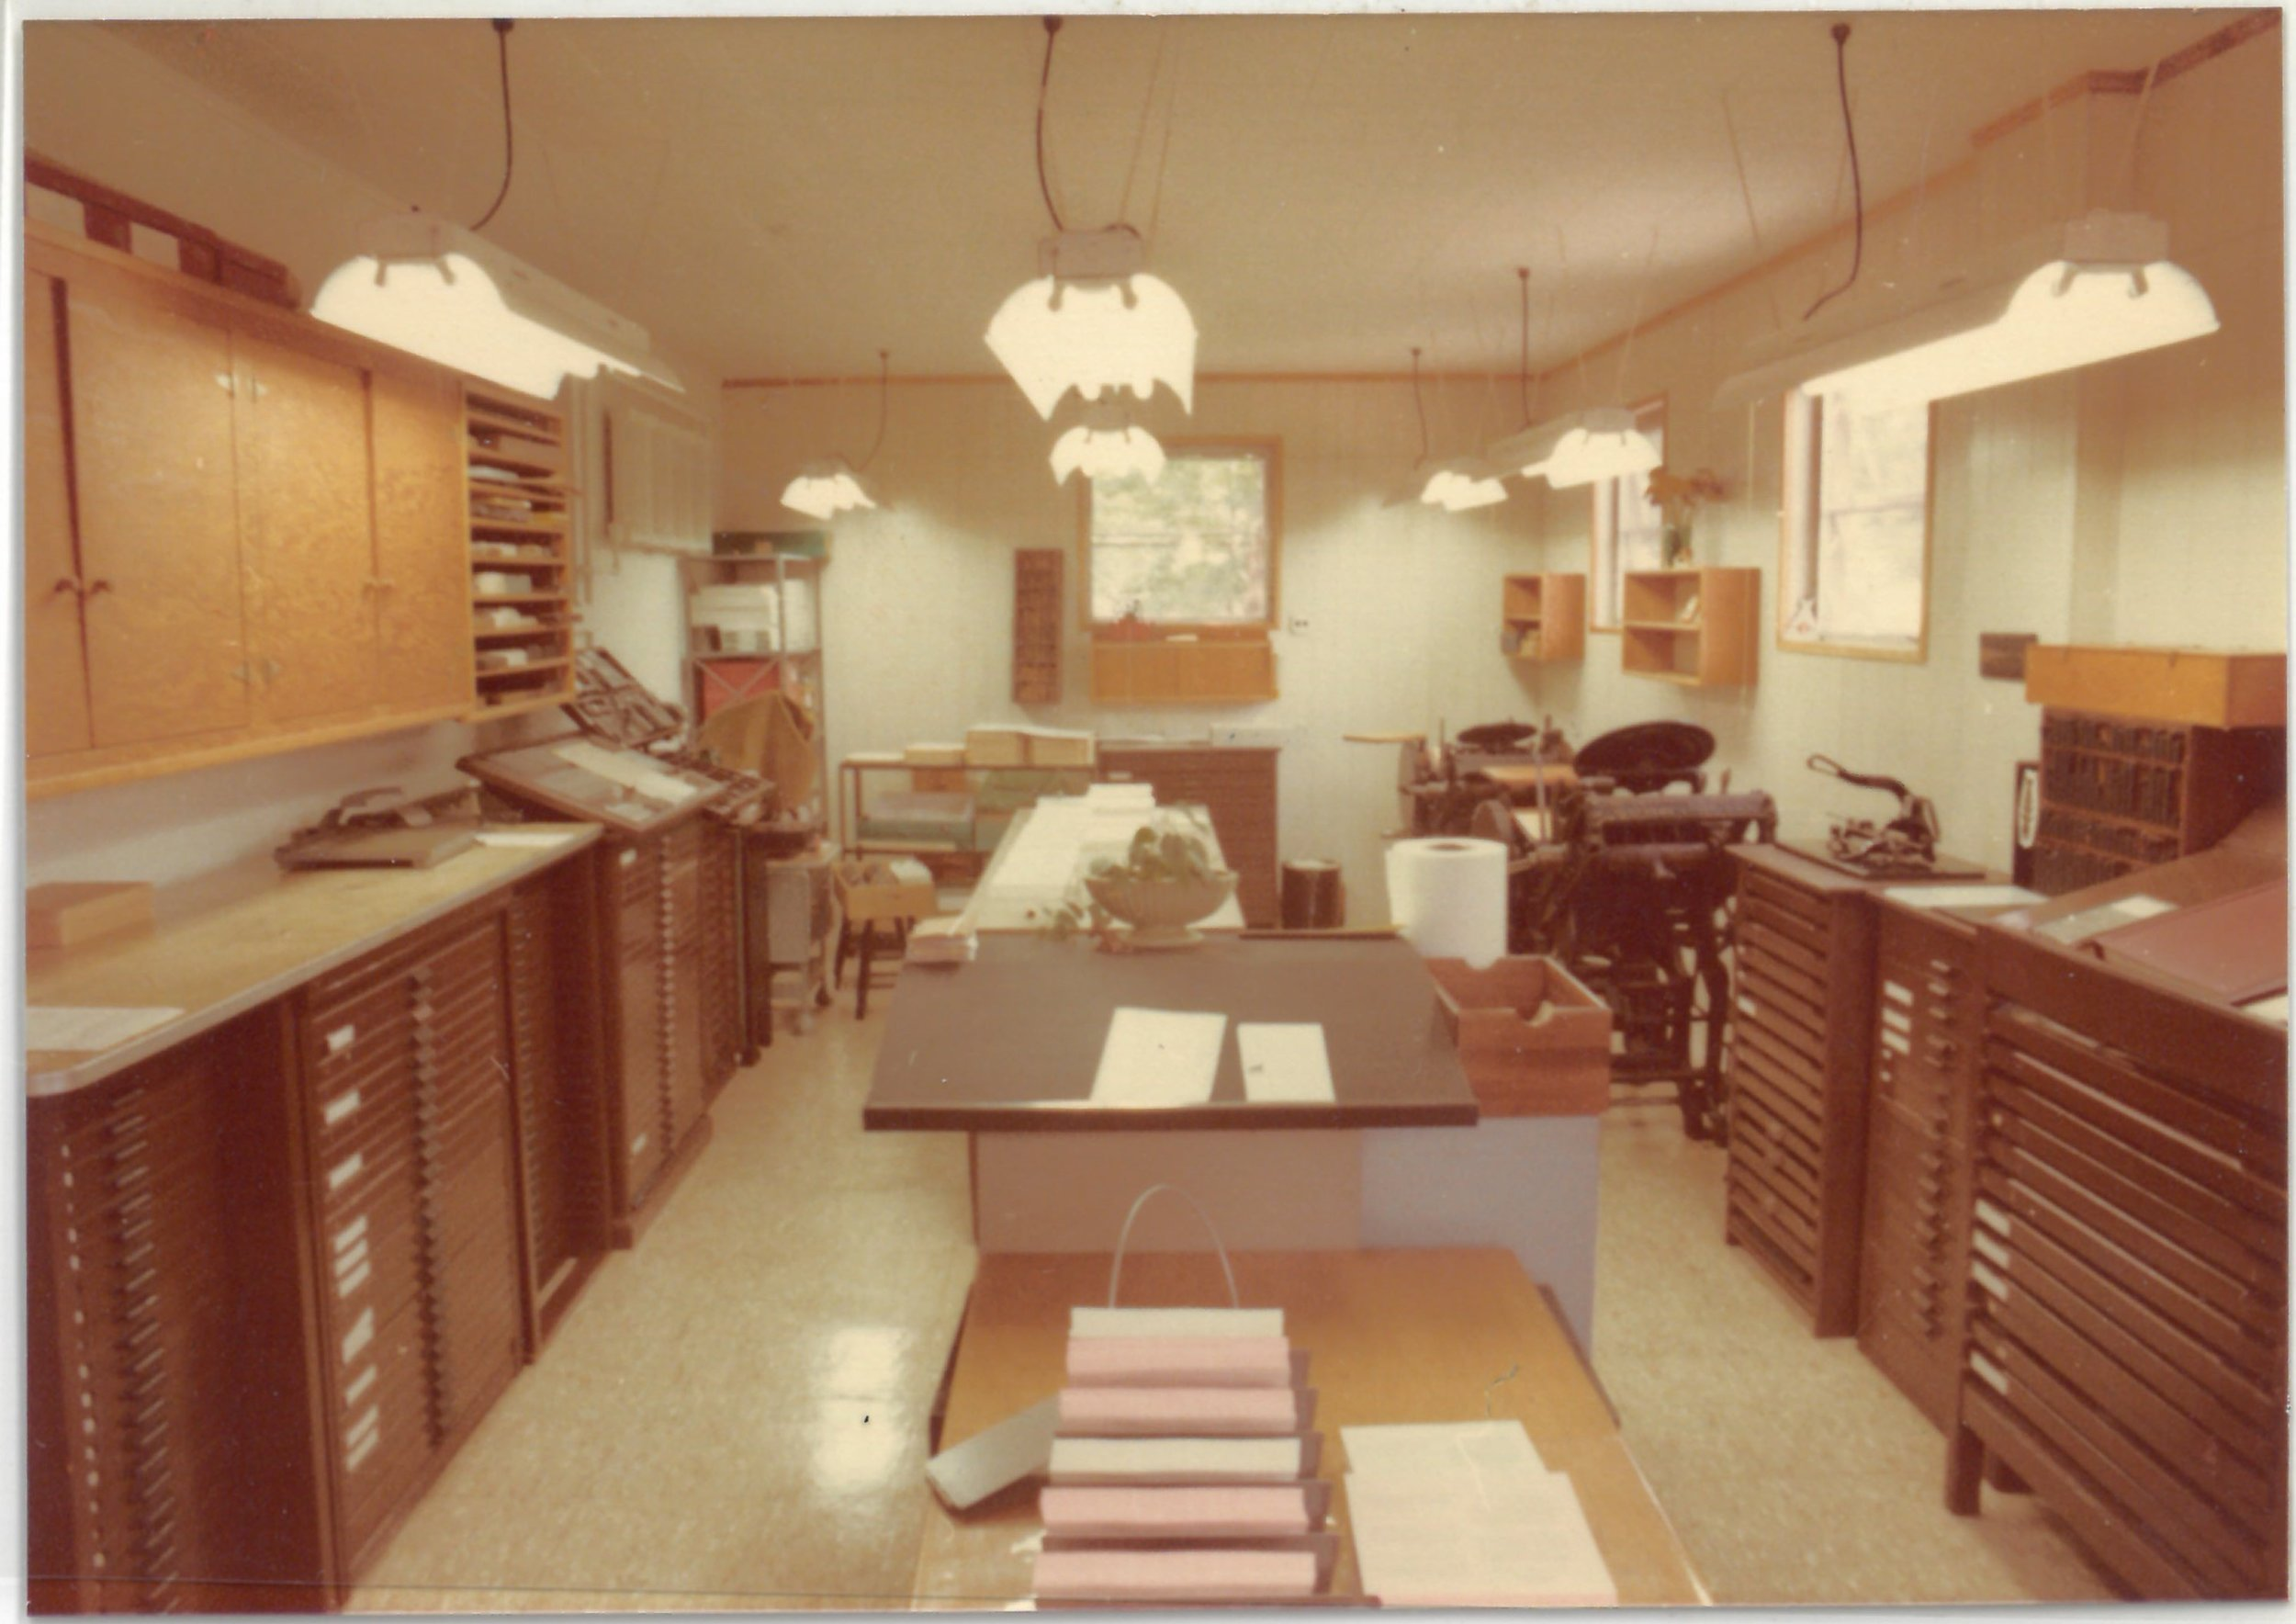 print shop annex now soap room.jpg